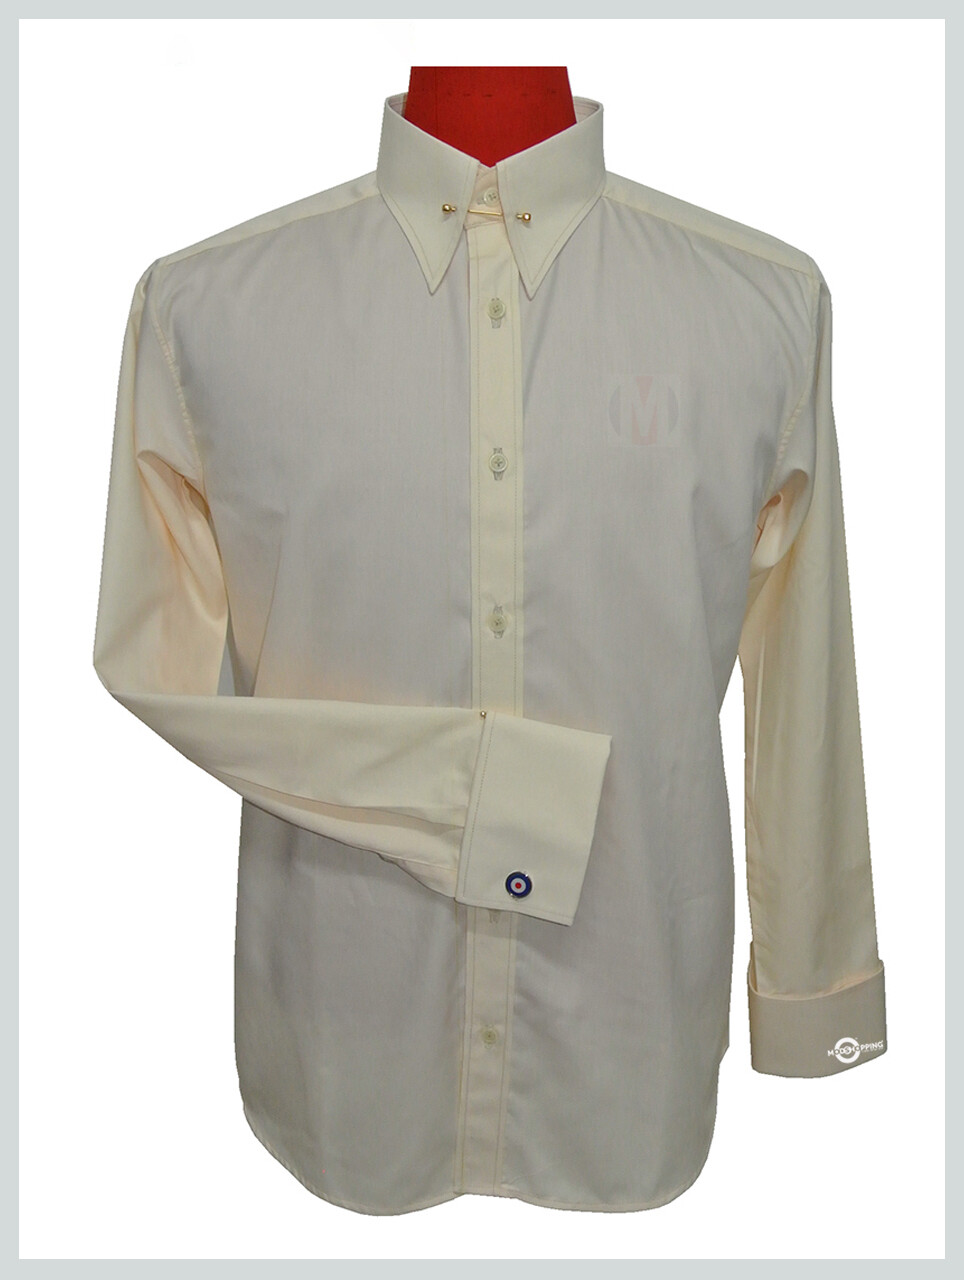 IVORY COLOR PIN COLLAR SHIRT